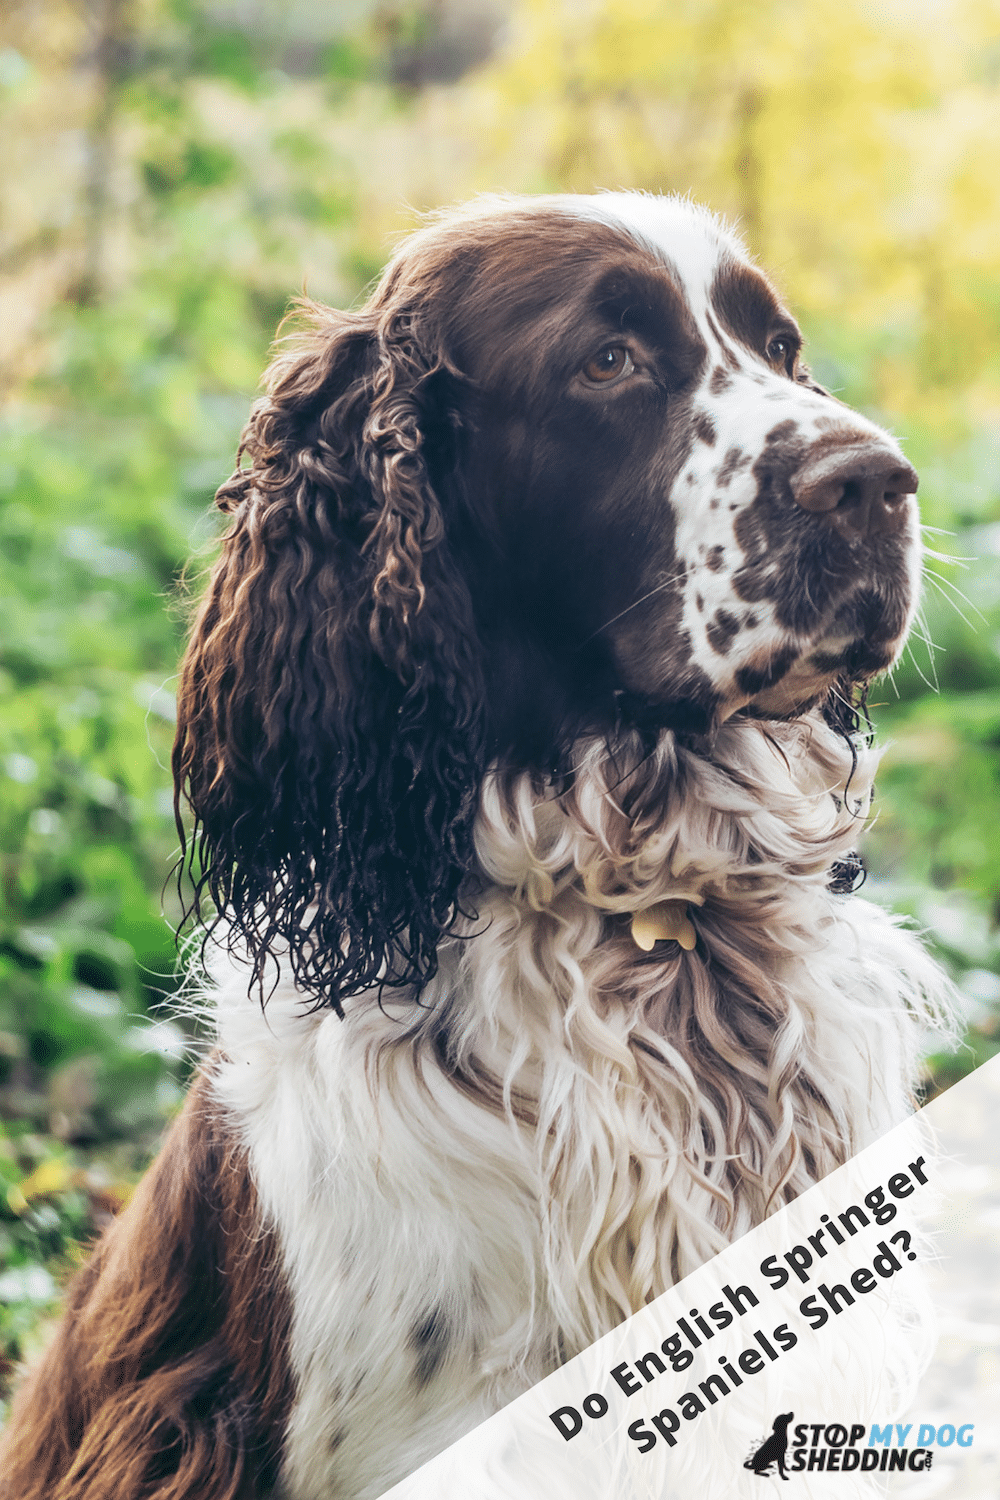 Do English Springer Spaniels Shed a Lot?